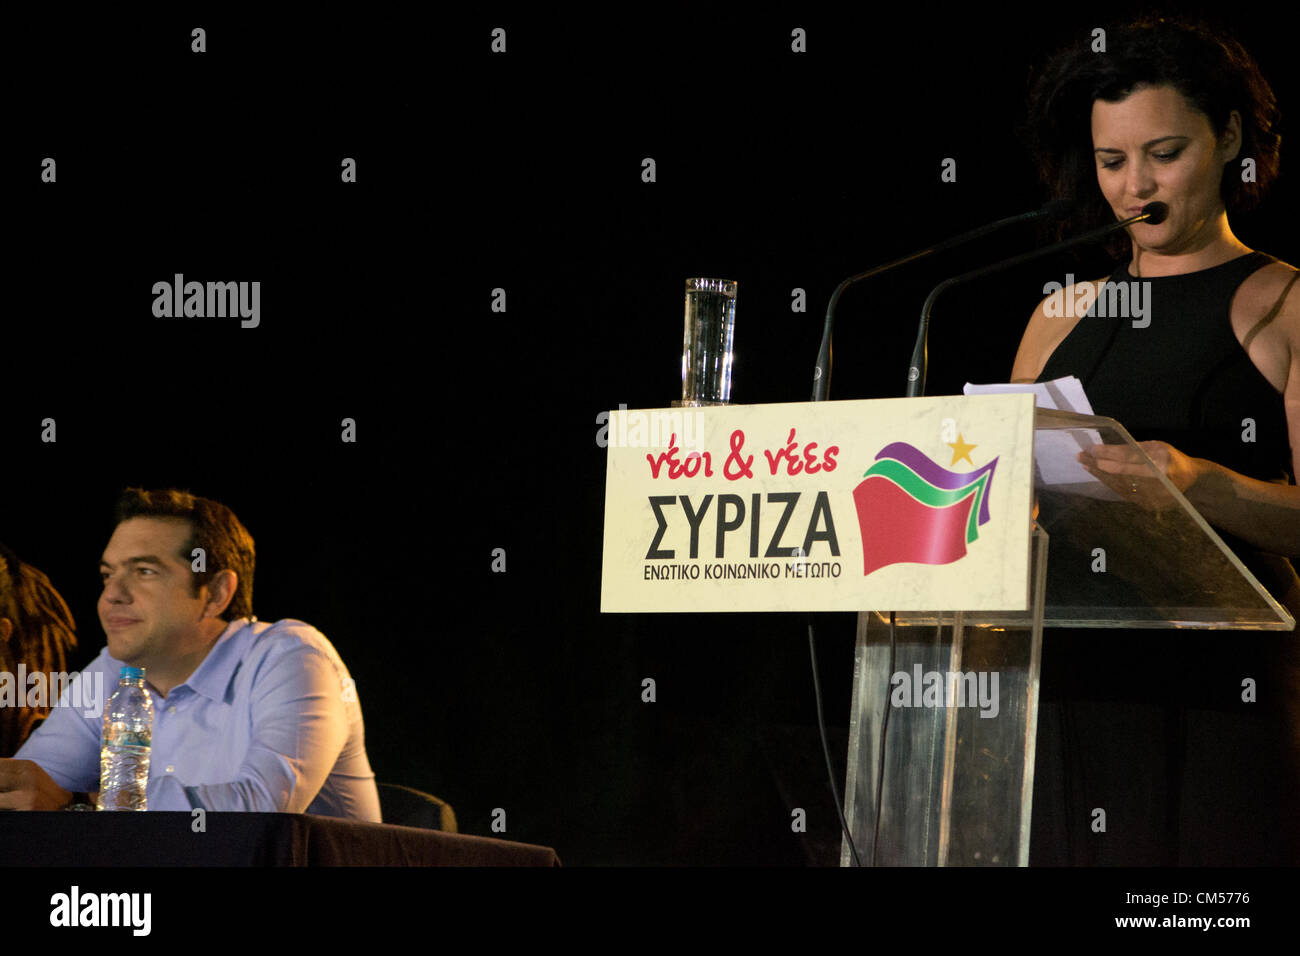 Athens, Greece, 6th October 2012. The youth members of the Greek opposition, left wing party SYRIZA organize a festival. - Stock Image